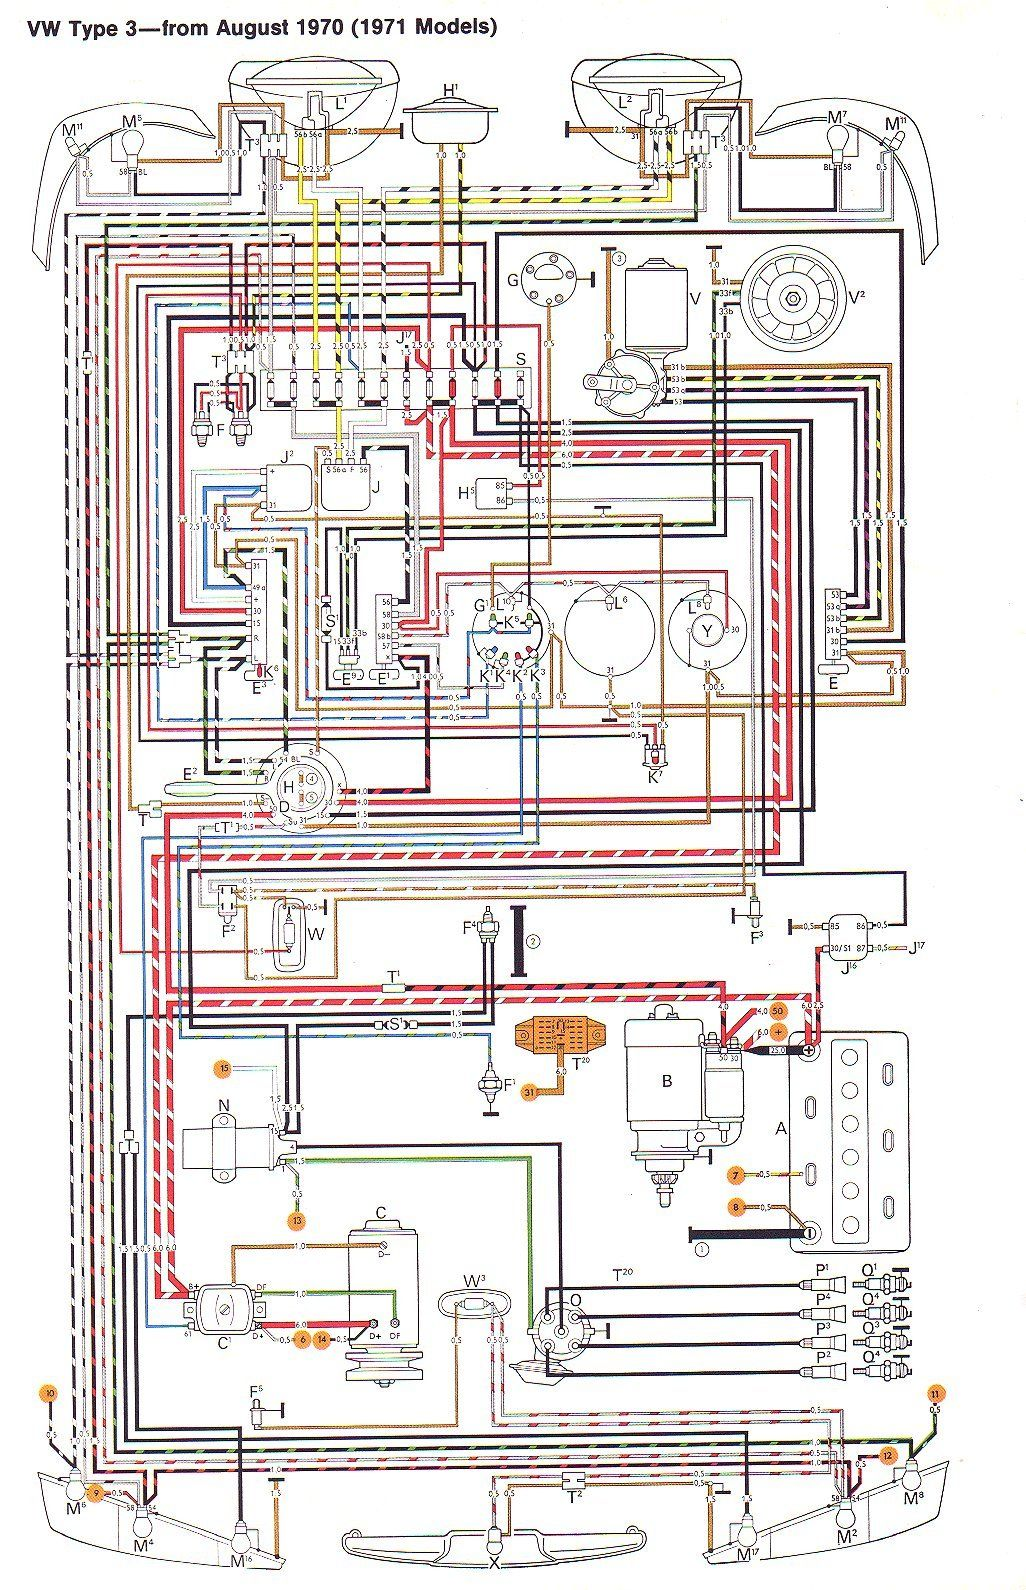 e0db58370f79a63d02d45f00cf63f44a 71 vw t3 wiring diagram car projects pinterest volkswagen vw bus samba wiring diagram at bayanpartner.co